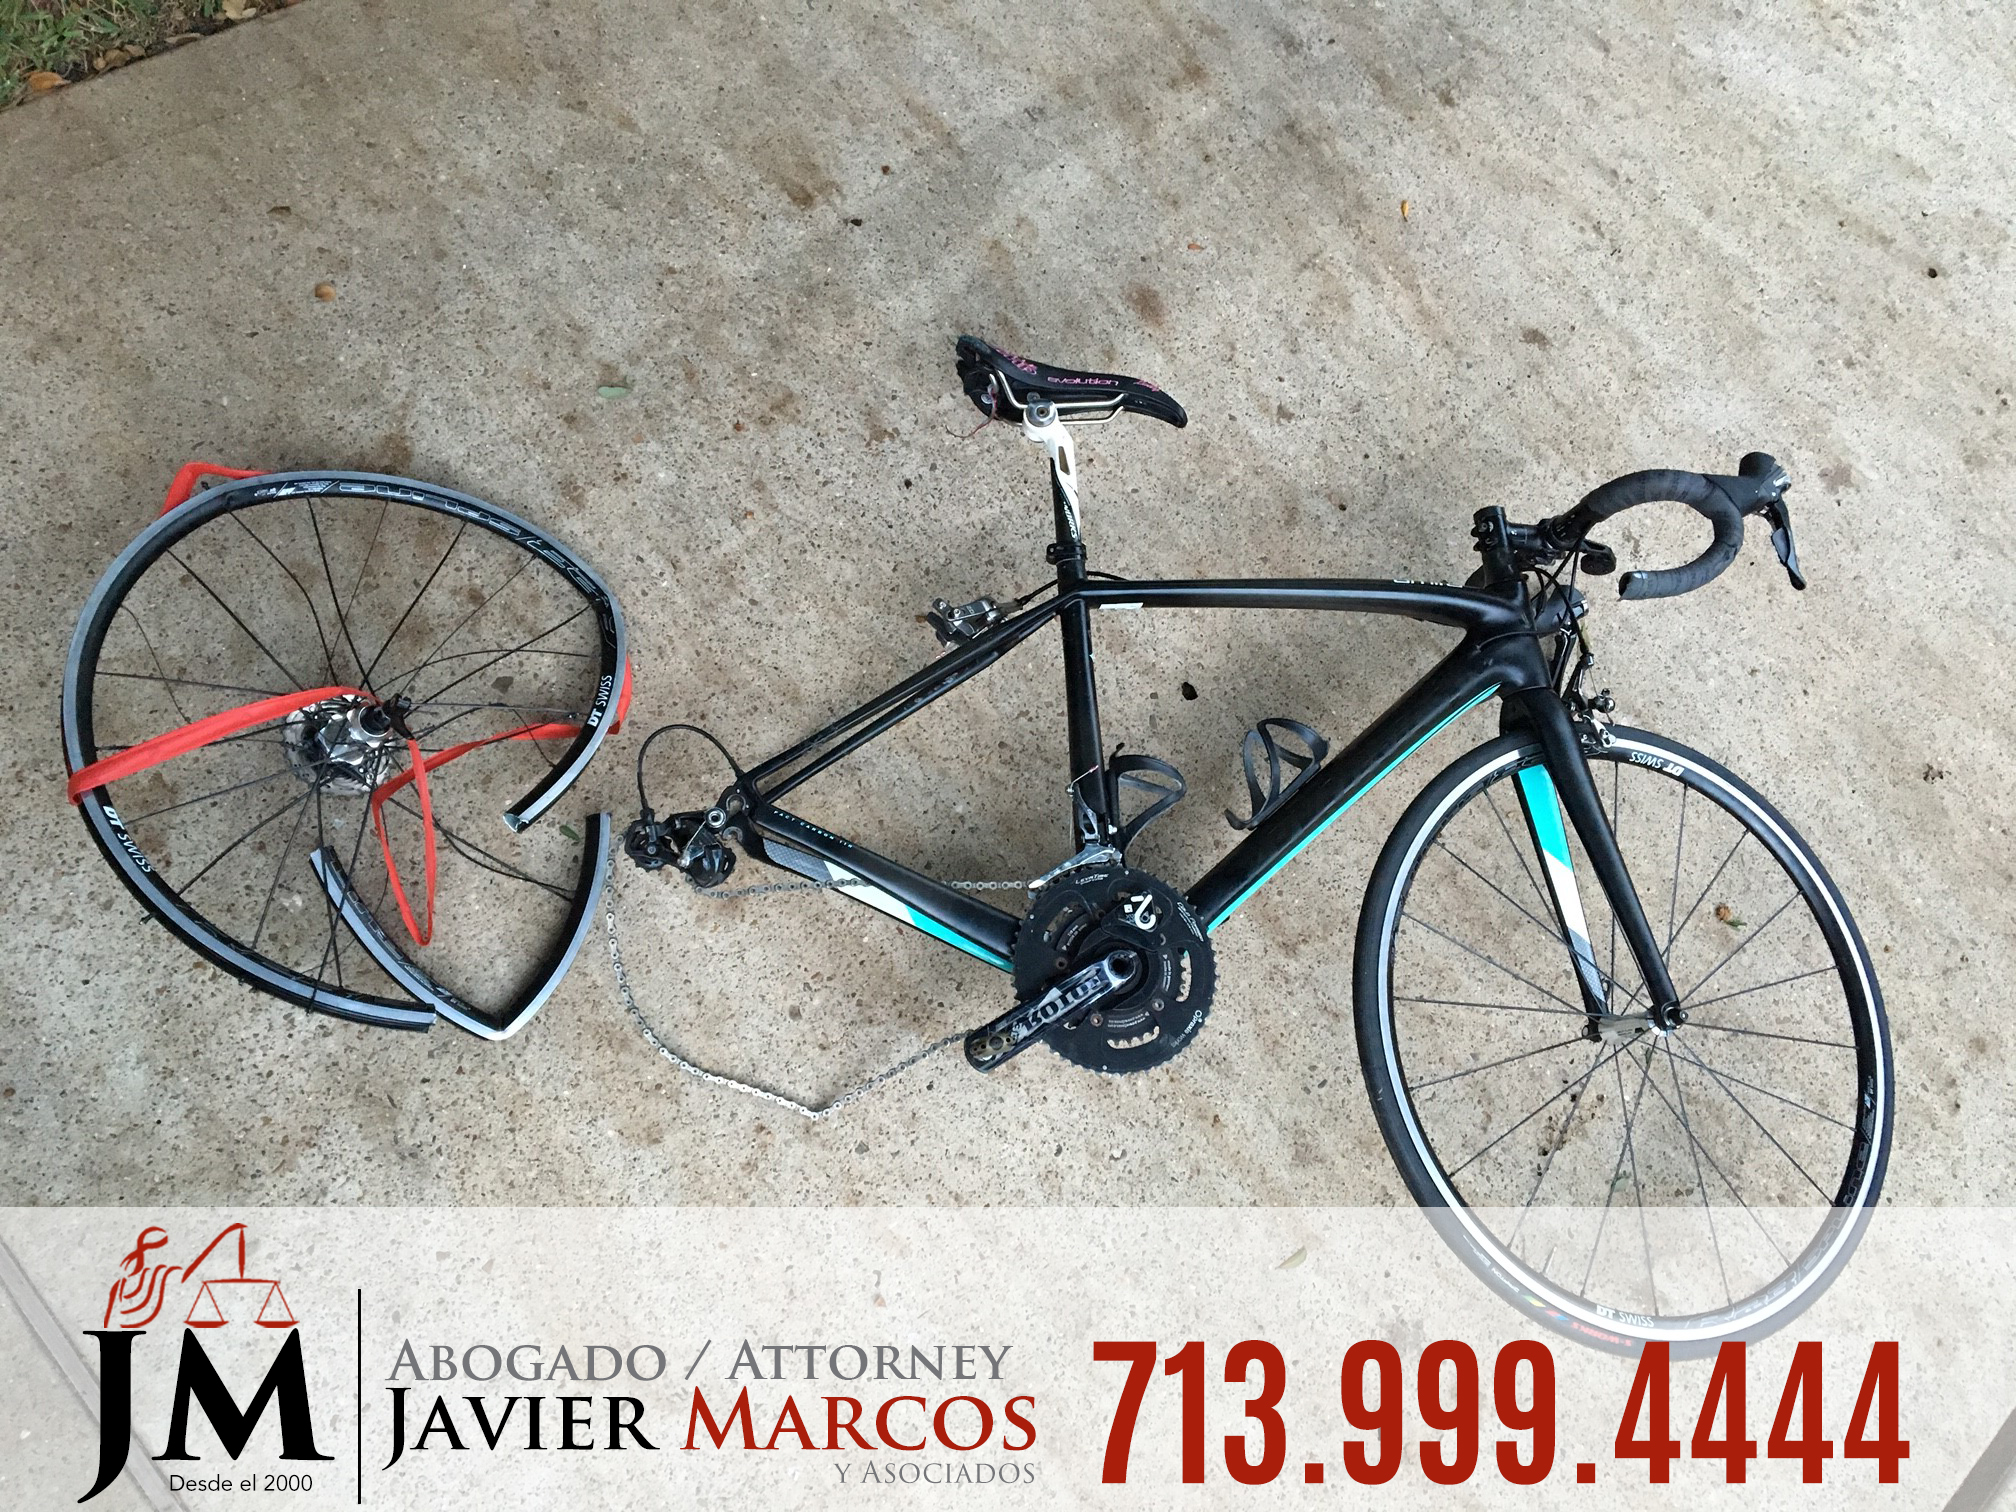 Bicycle accident attorney   Attorney Javier Marcos   713.999.4444